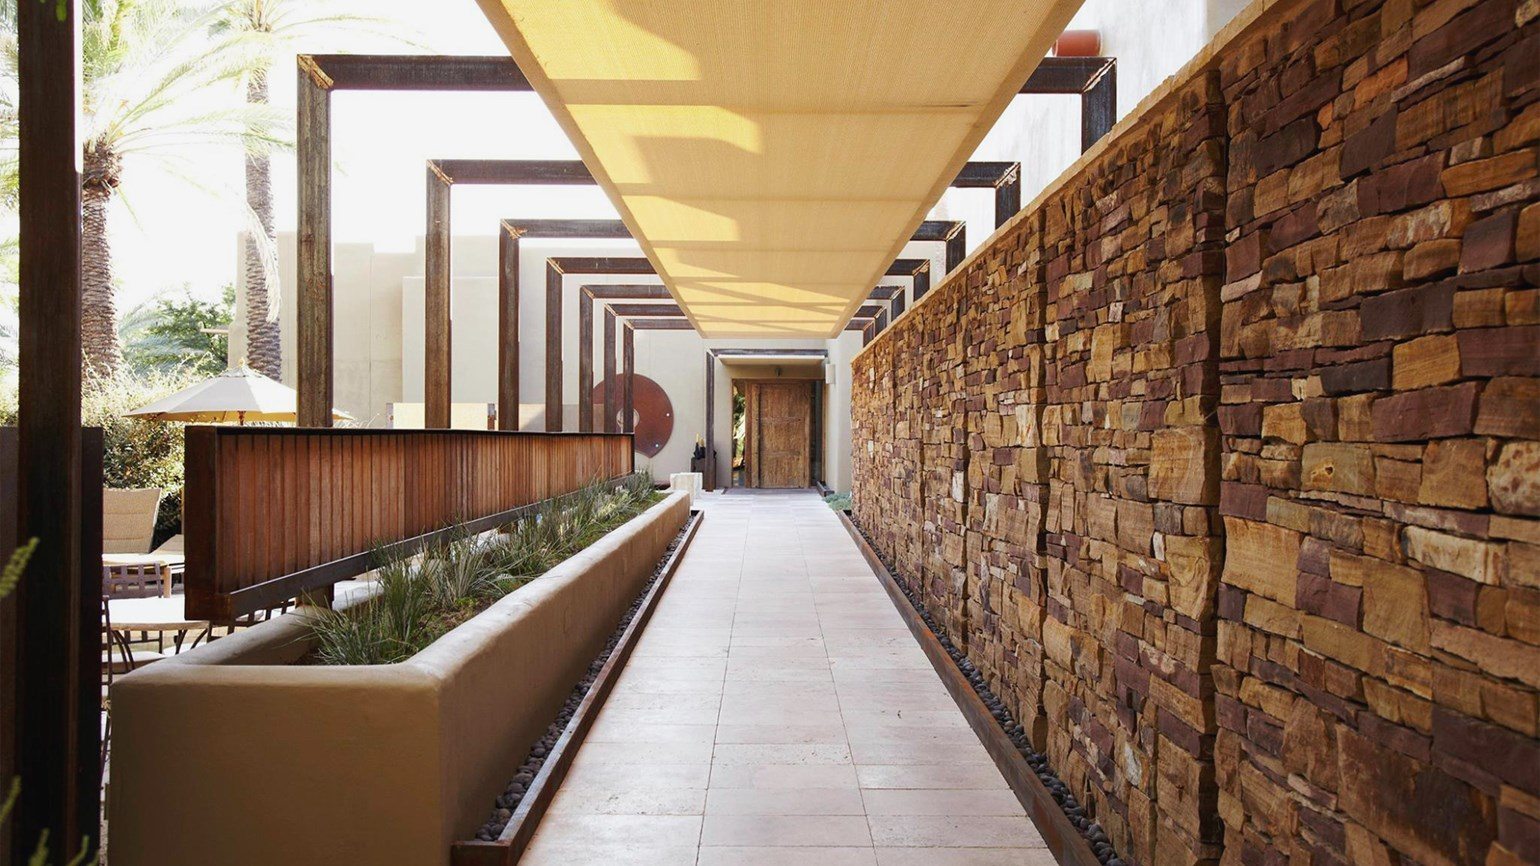 Hyatt adds wellness resort brand with Miraval acquisition